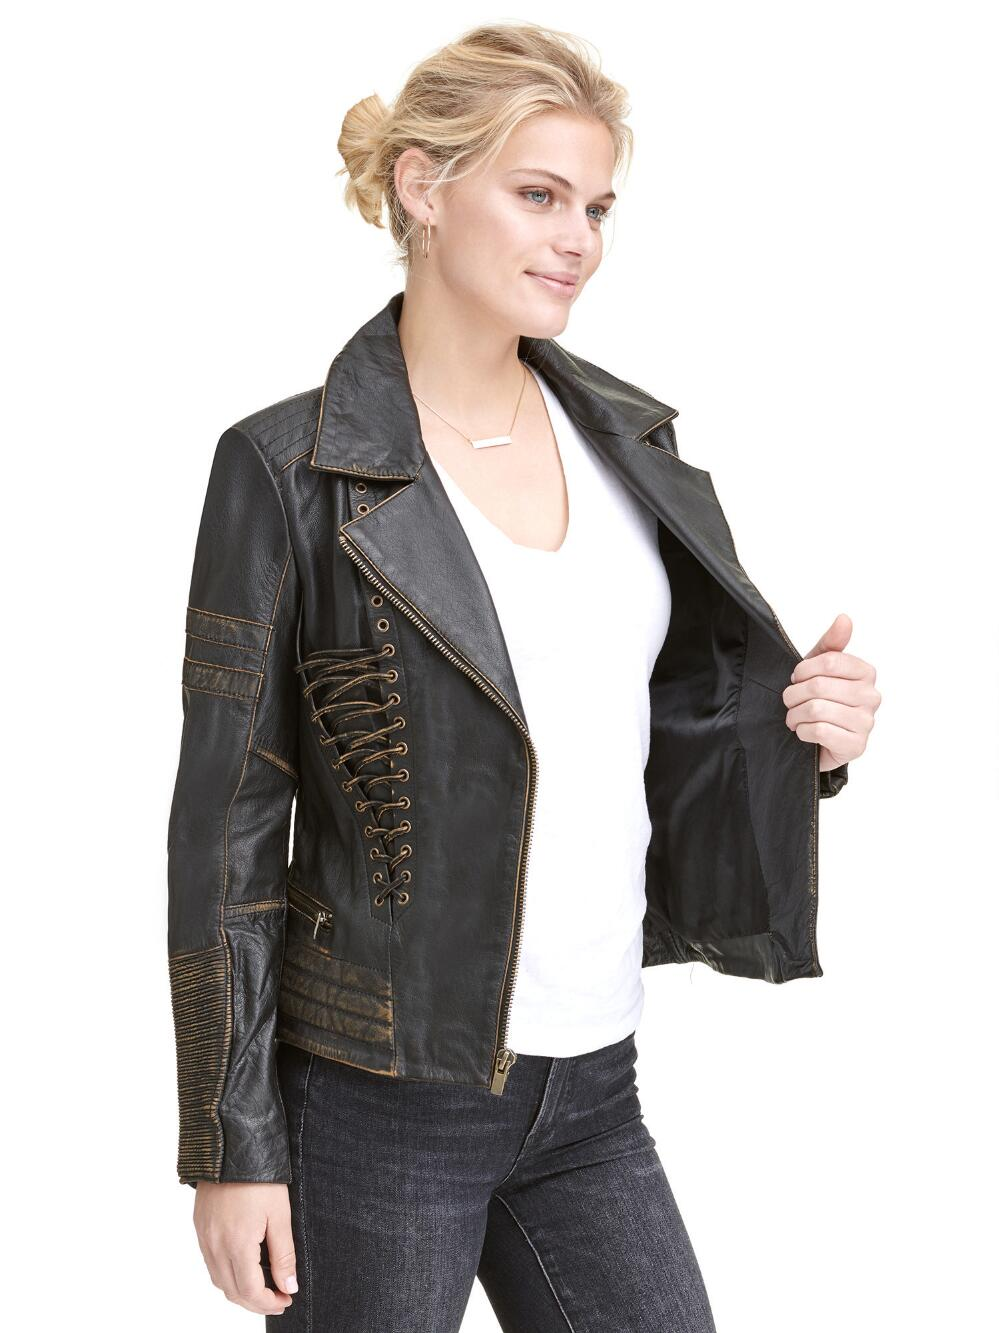 Wilsons Leather Womens Vintage Distressed Leather Asymmetric Jacket W Lace Up D Ebay